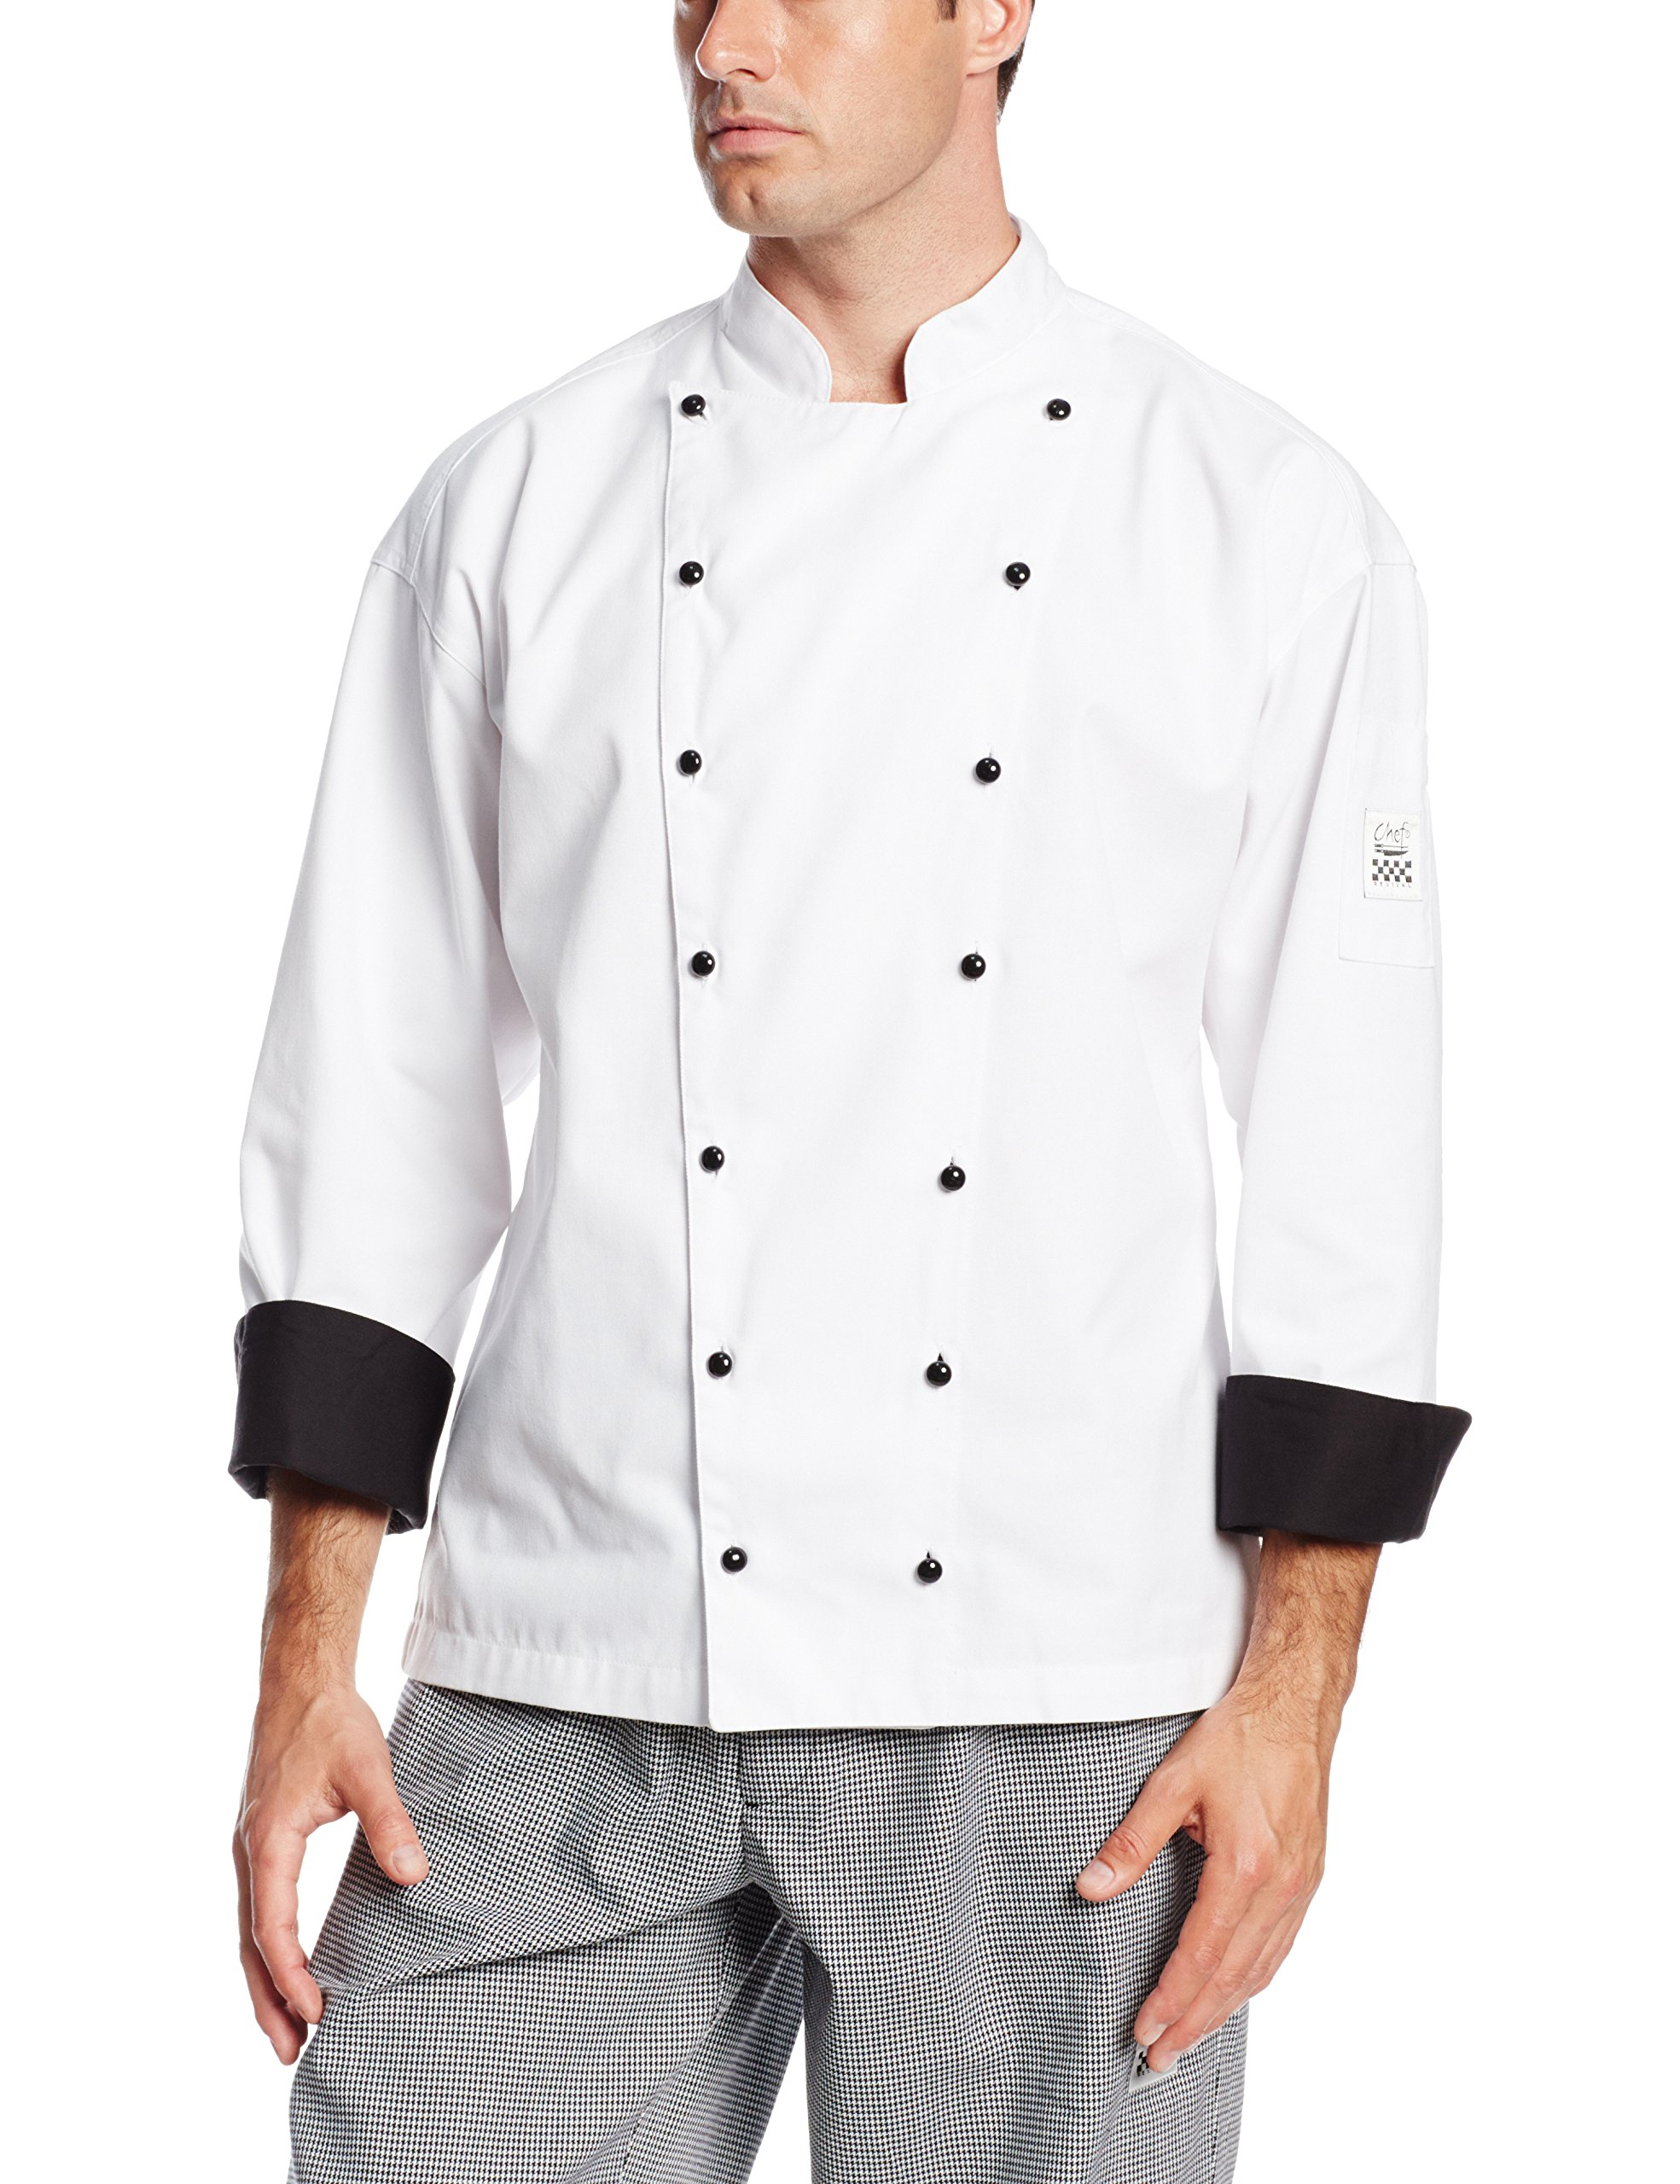 Chef Revival J013 Chef-Tex Poly Cotton Executive Long Sleeve Jacket with Black Cuff and Push Through Button, 4X-Large, White